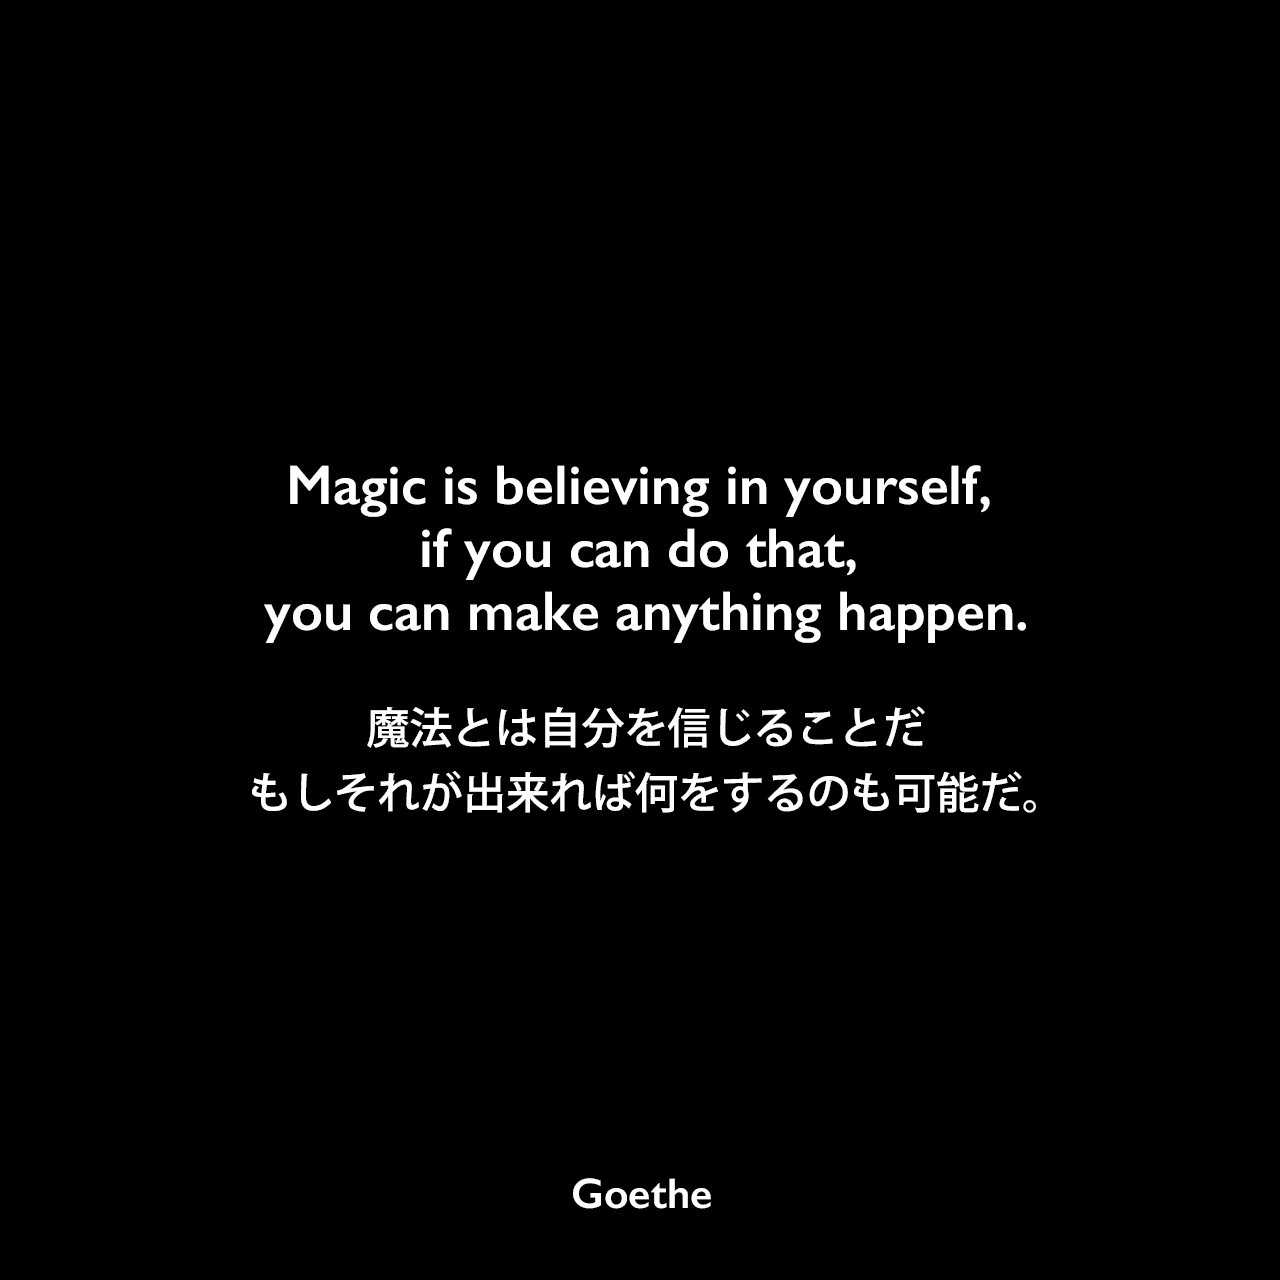 Magic is believing in yourself, if you can do that, you can make anything happen.魔法とは自分を信じることだ、もしそれが出来れば何をするのも可能だ。